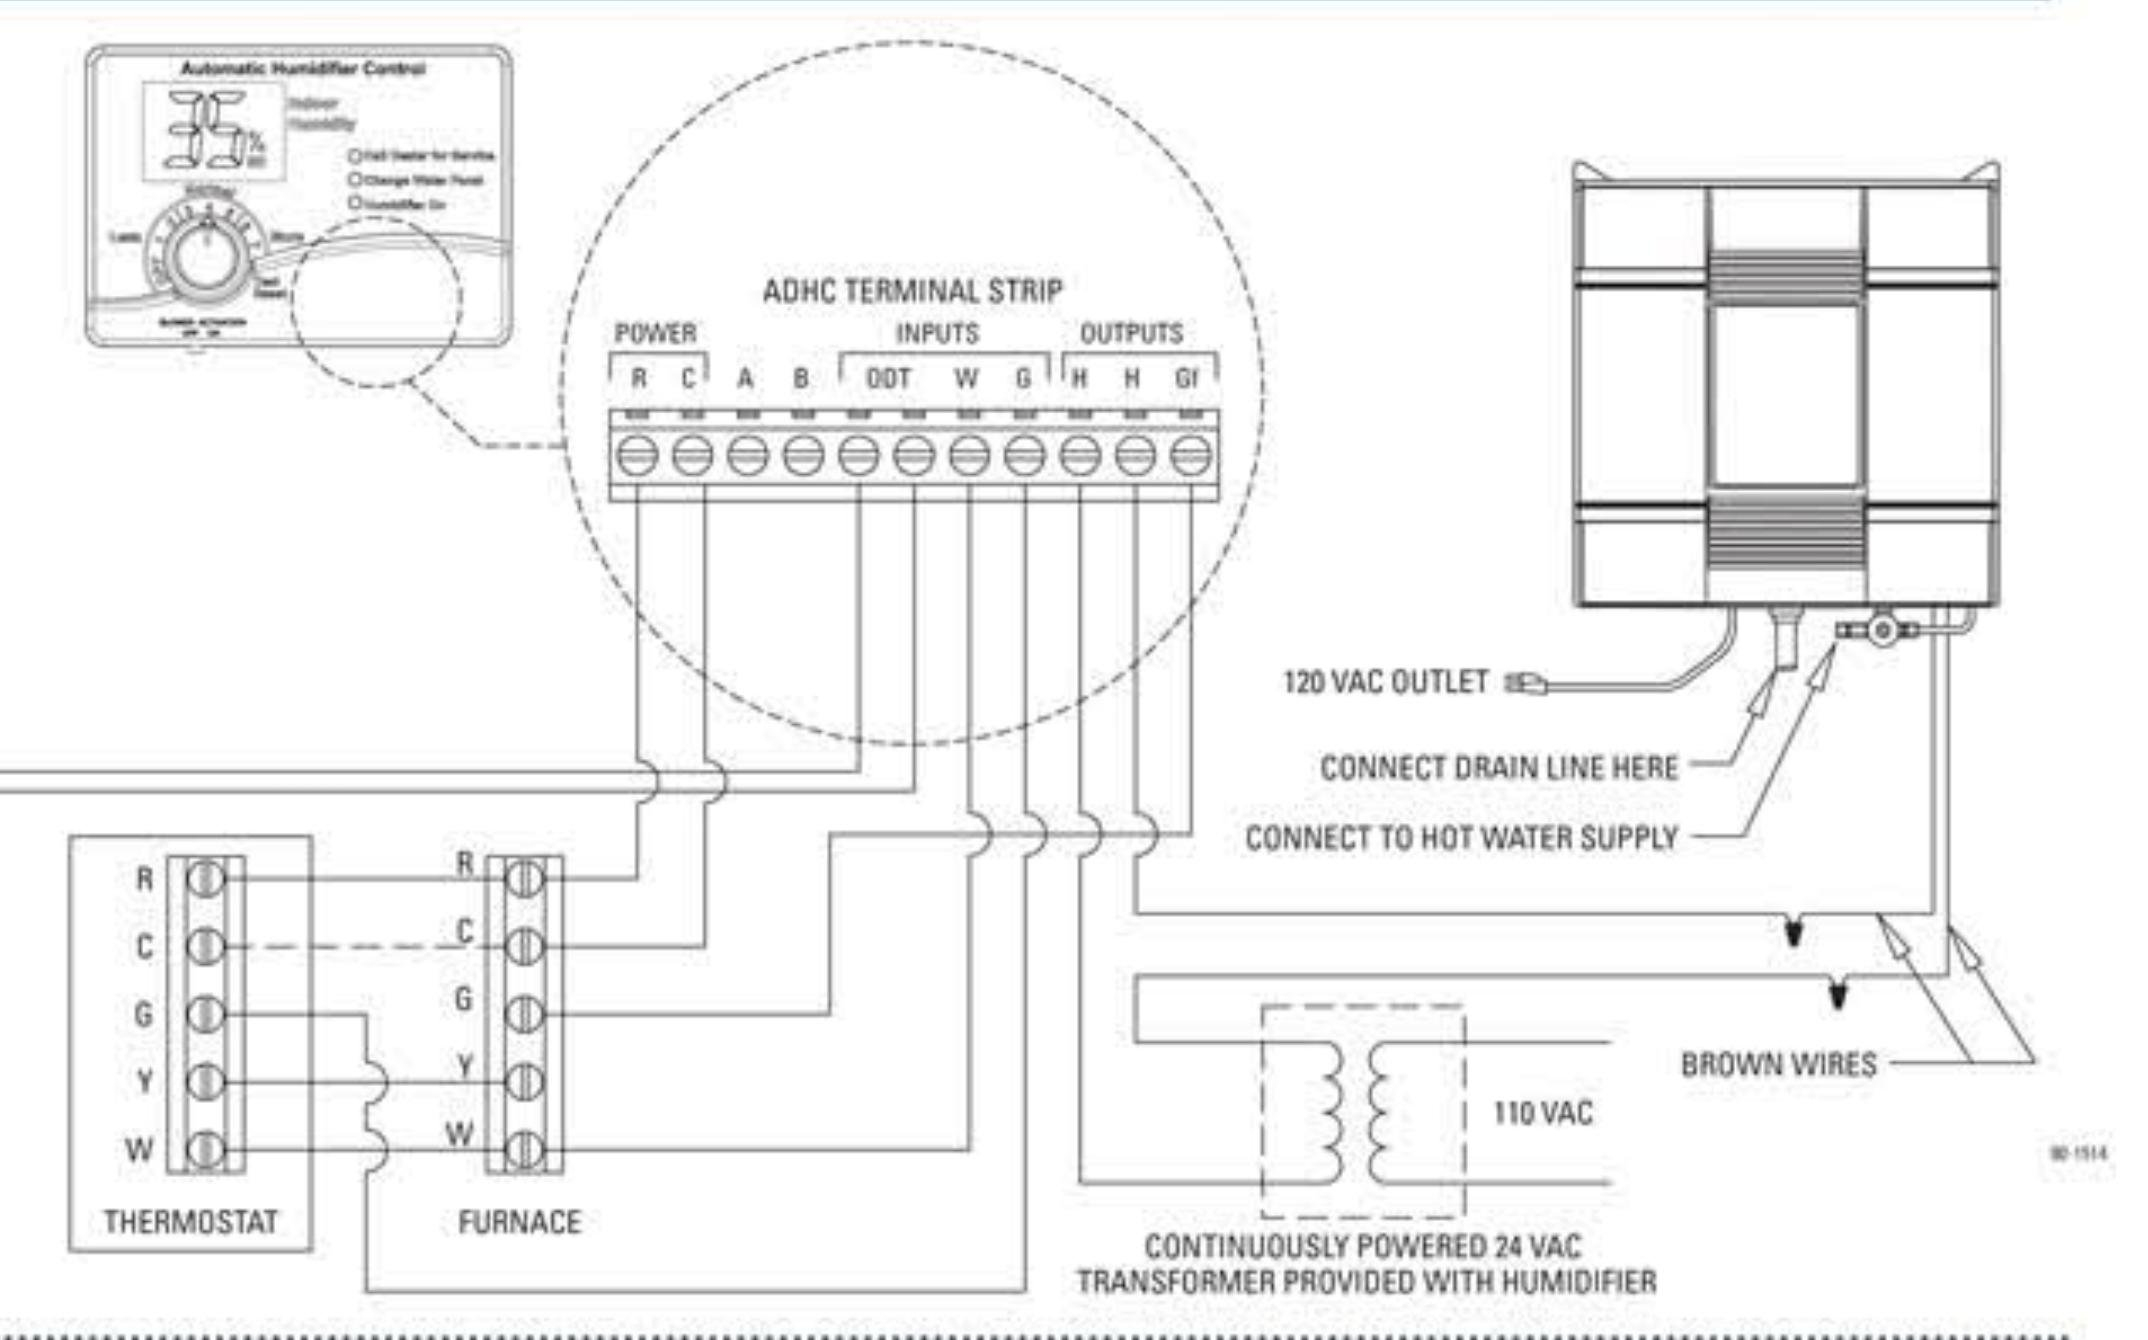 Aprilaire 224 Wiring Diagram | Wiring Library - Aprilaire 700 Nest Wiring Diagram